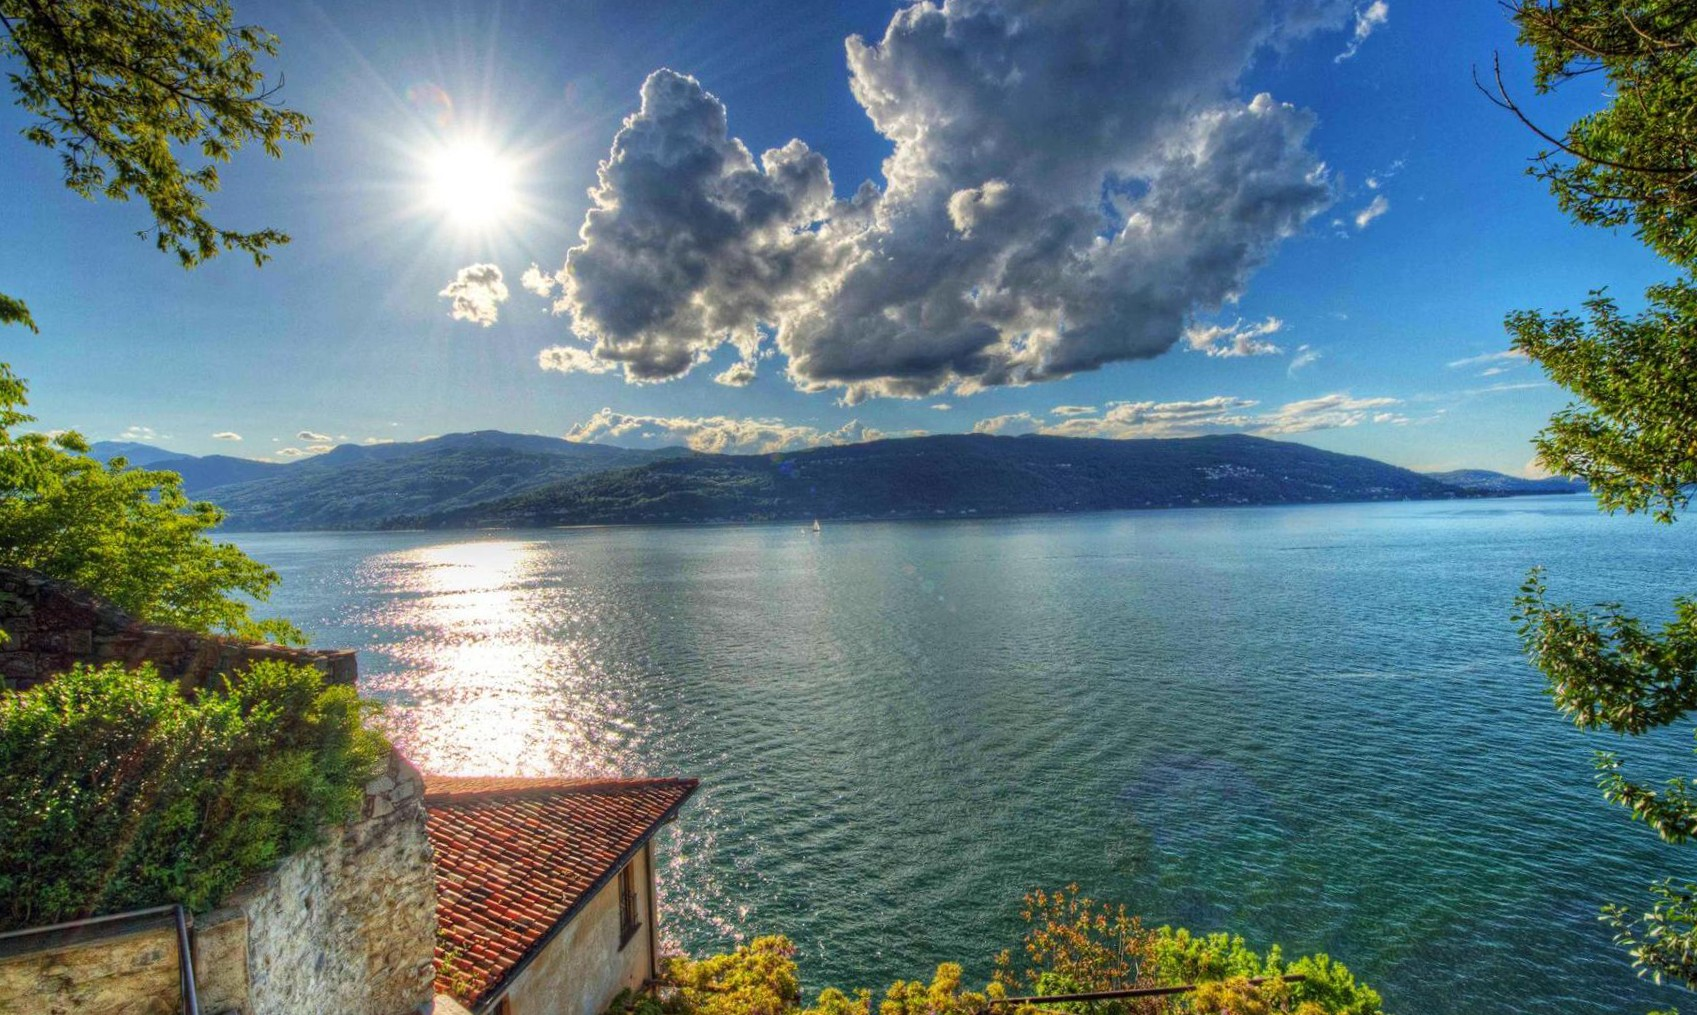 nature view wallpaper,natural landscape,nature,body of water,sky,lake